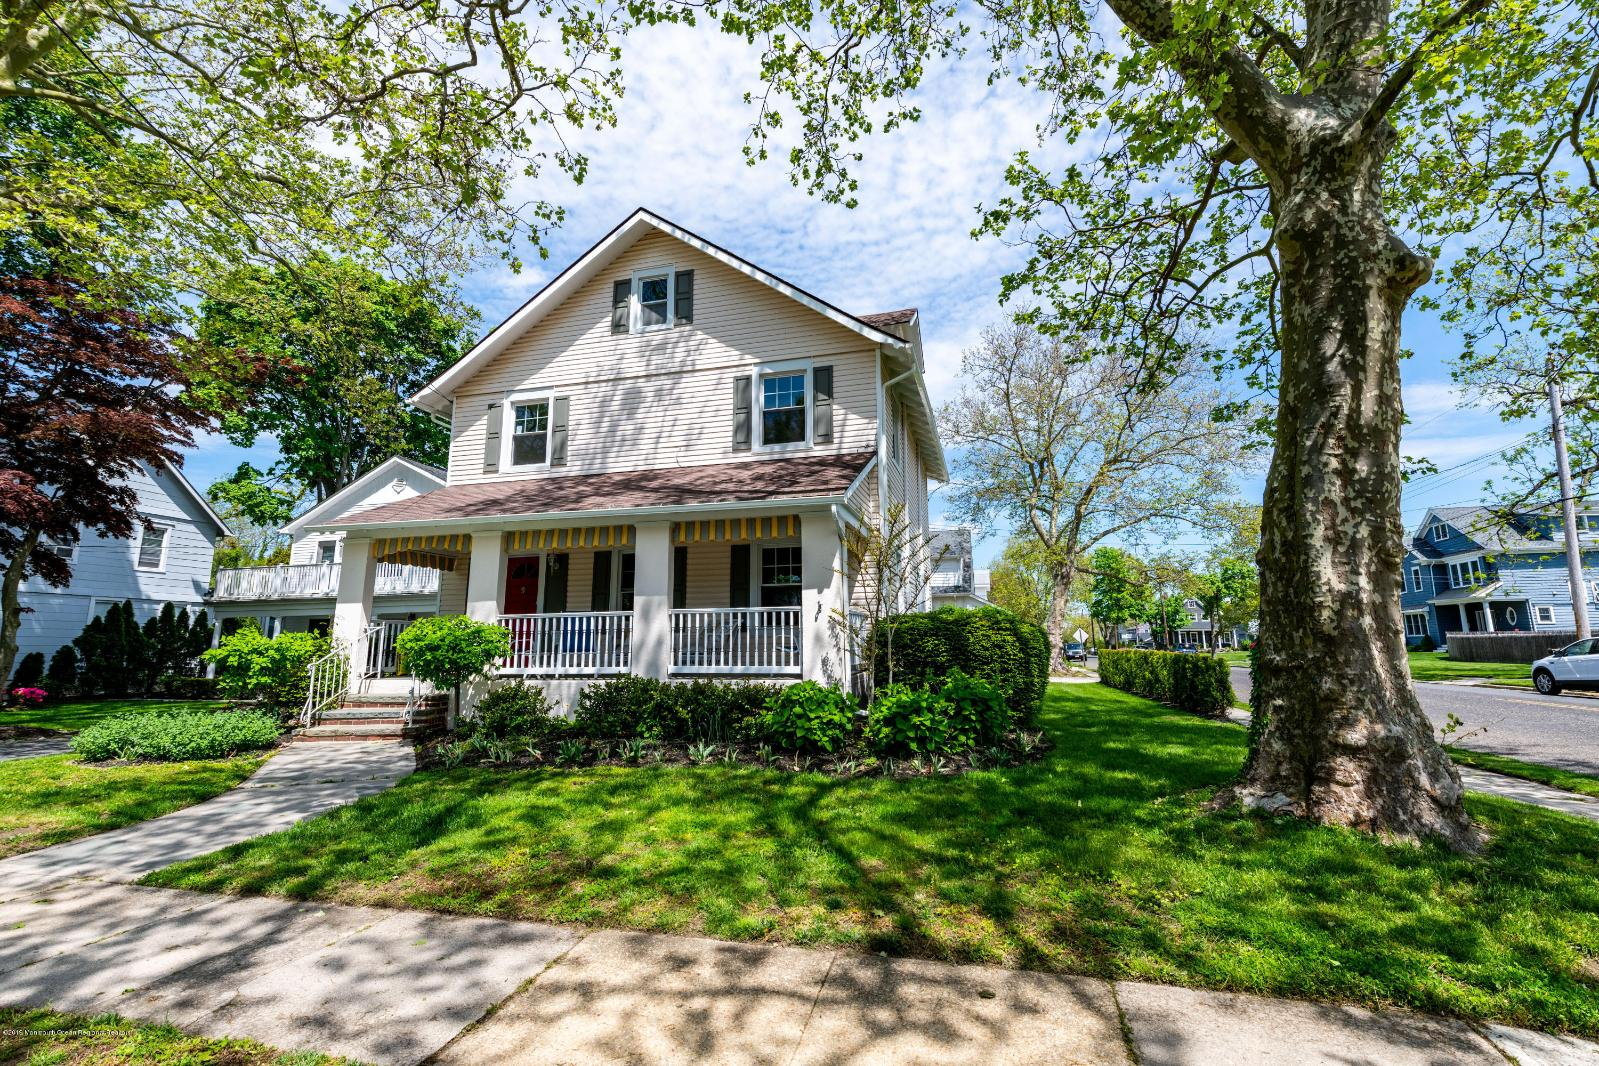 Local Real Estate: Homes for Sale — Spring Lake, NJ — Coldwell Banker